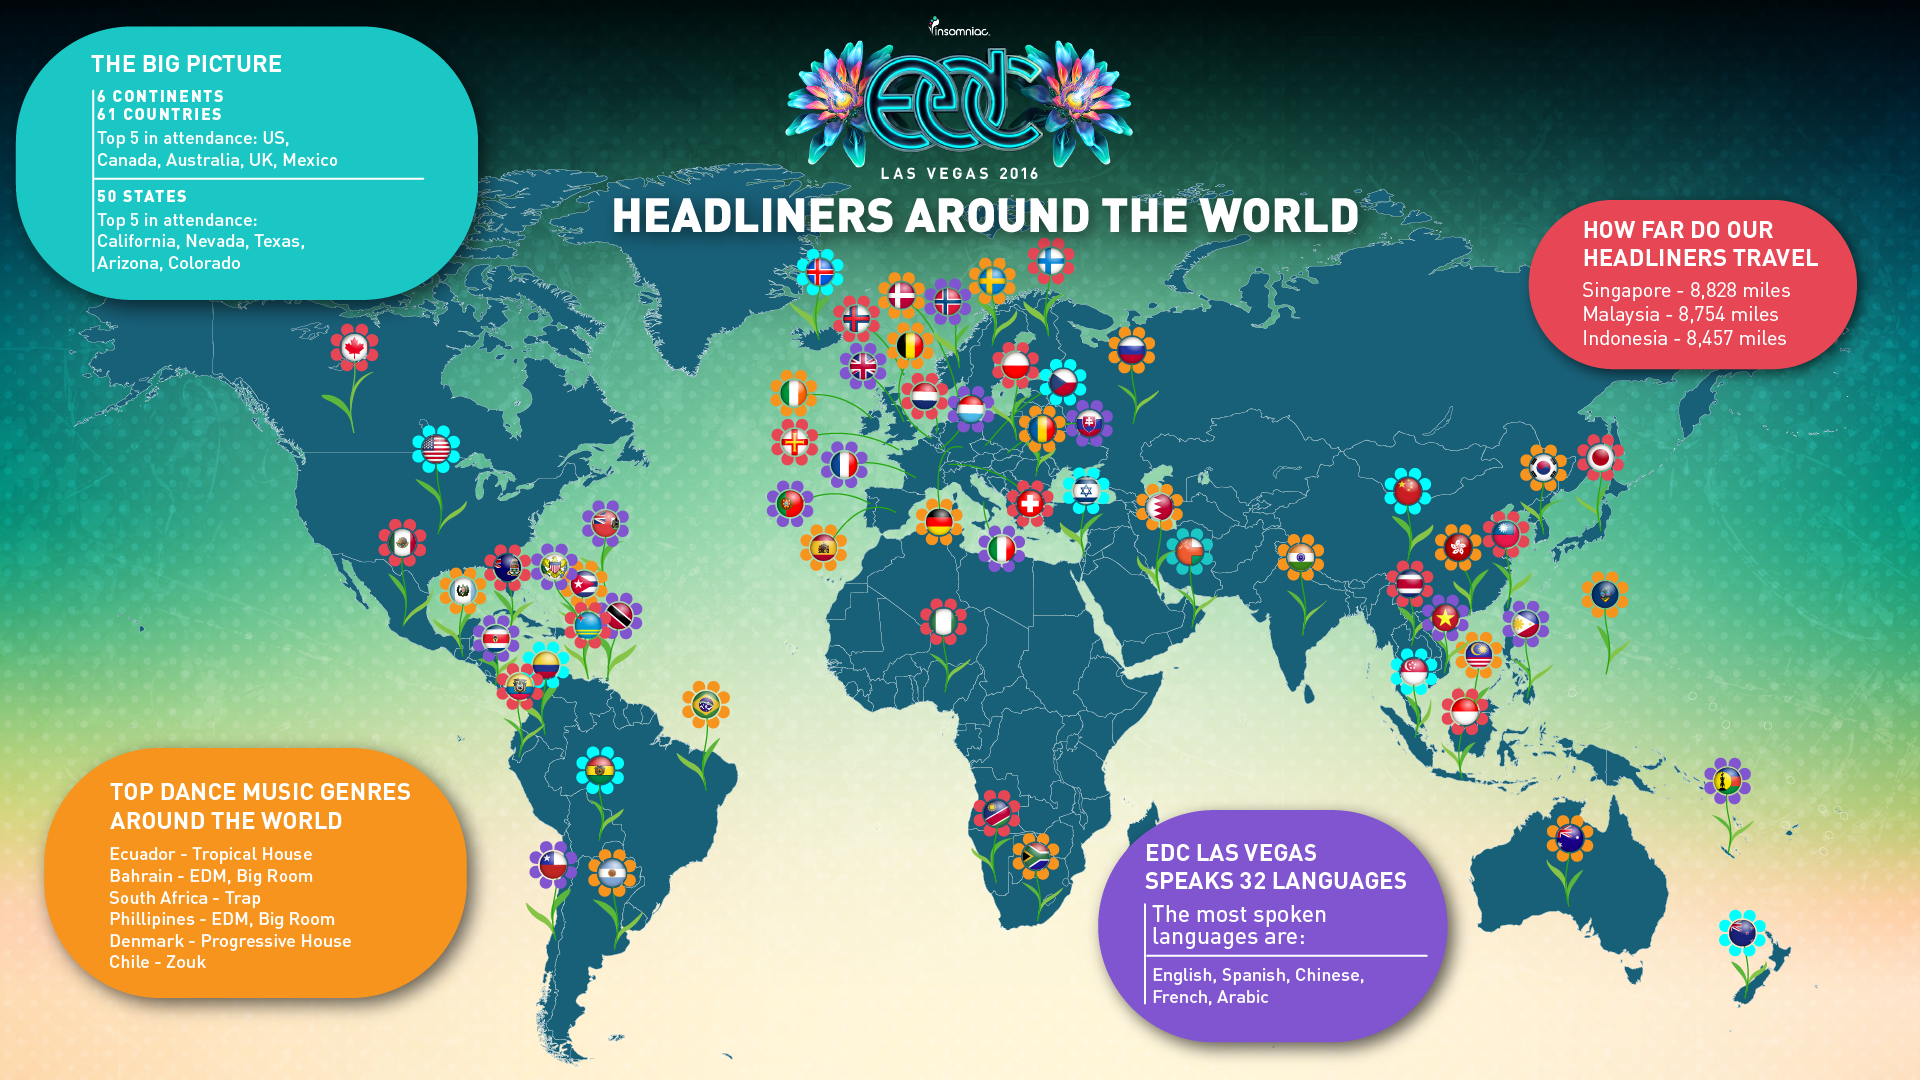 EDC Las Vegas Attracts Headliners From More Than Countries - Edc las vegas map 2016